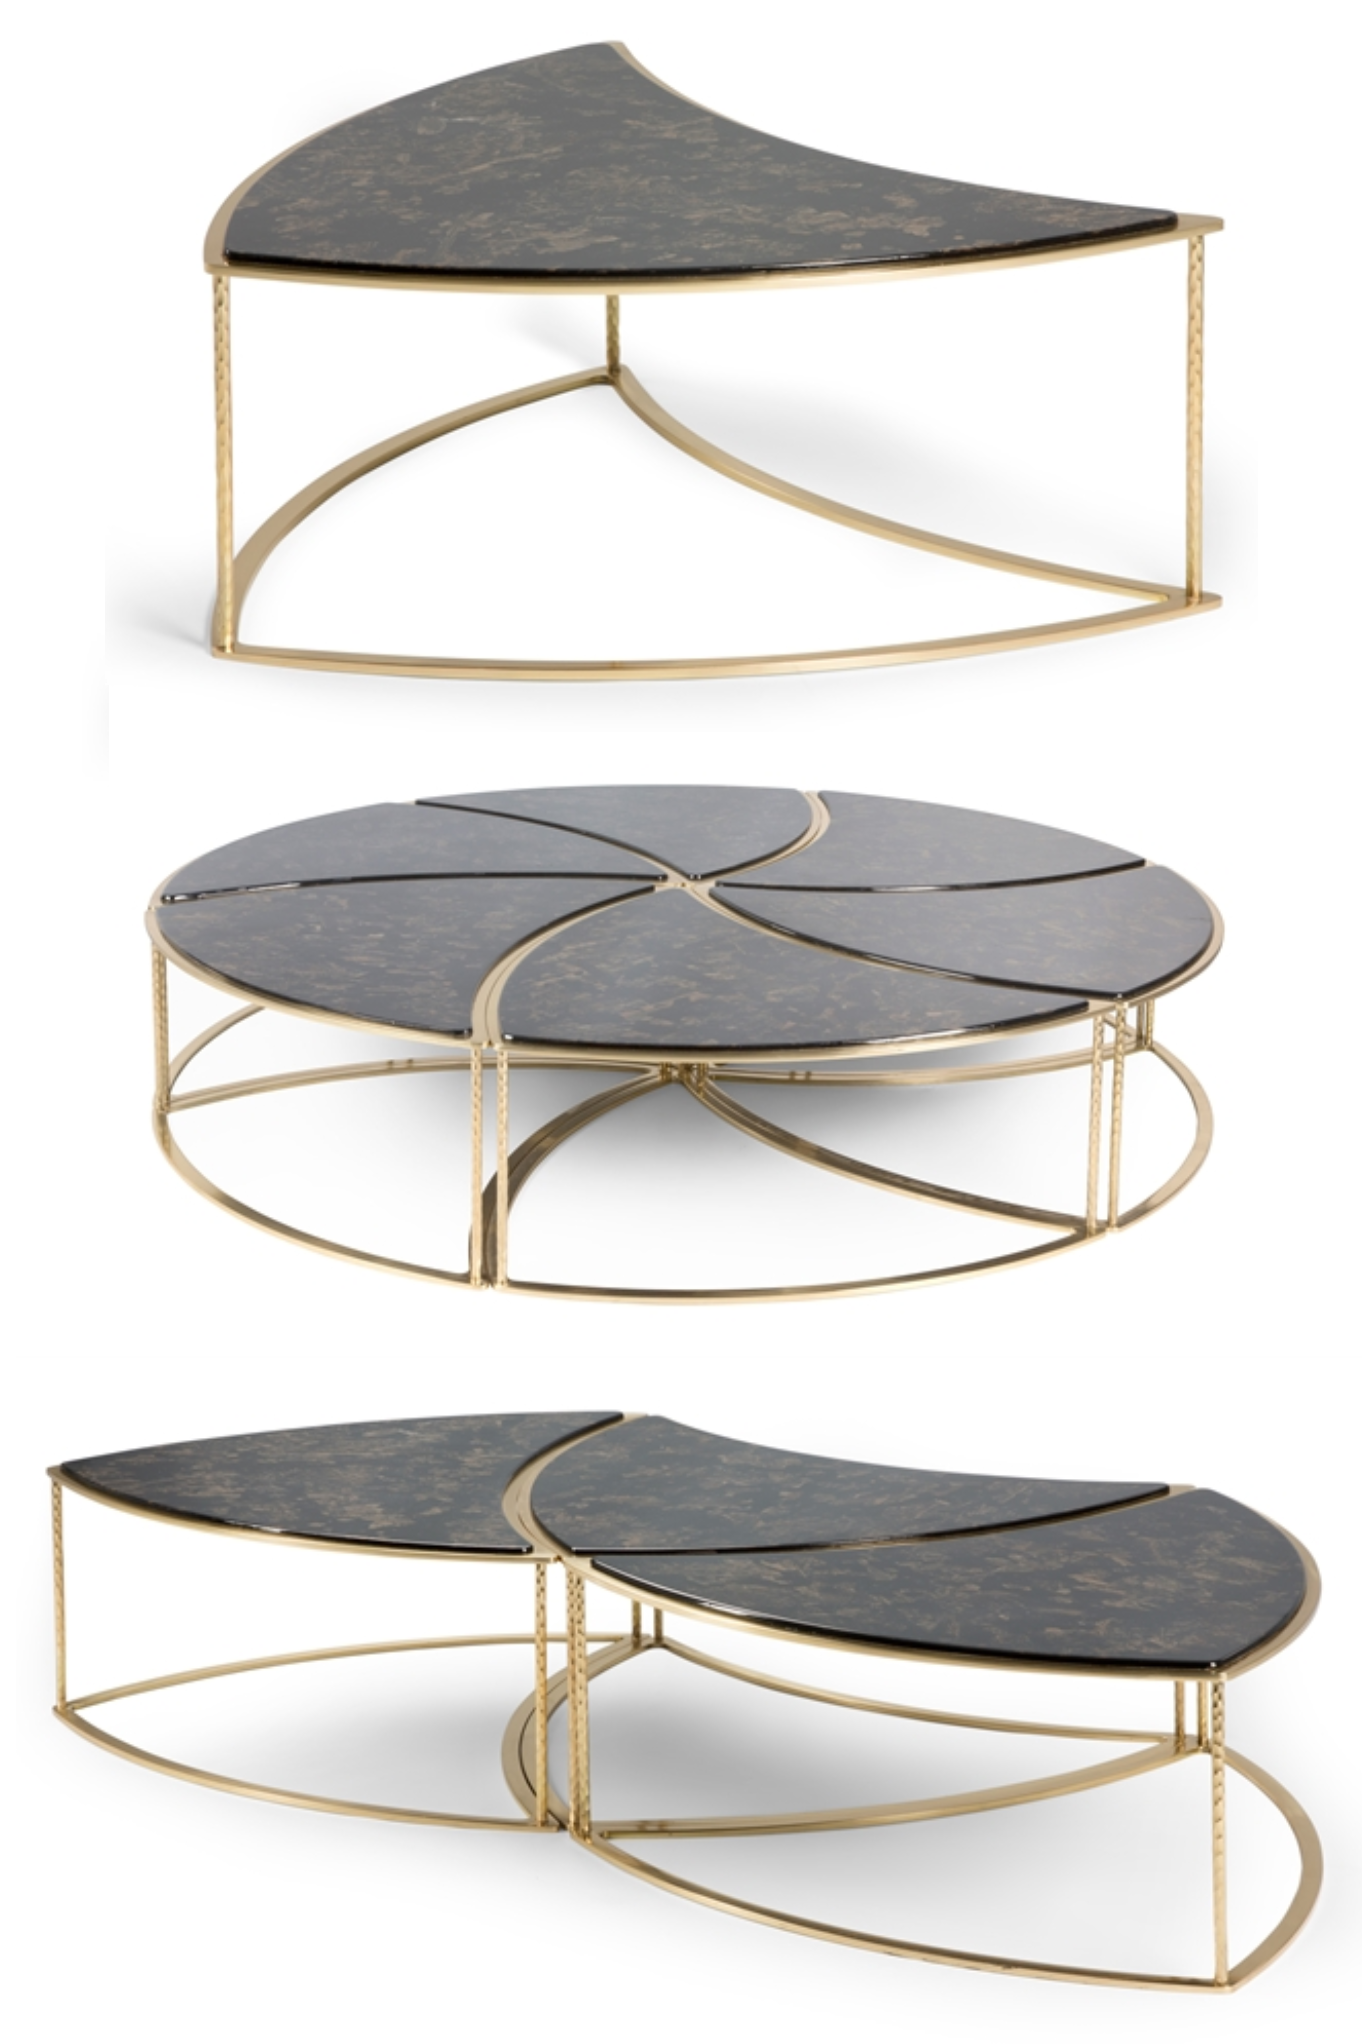 This unique 6 piece modular coffee table is available in 3